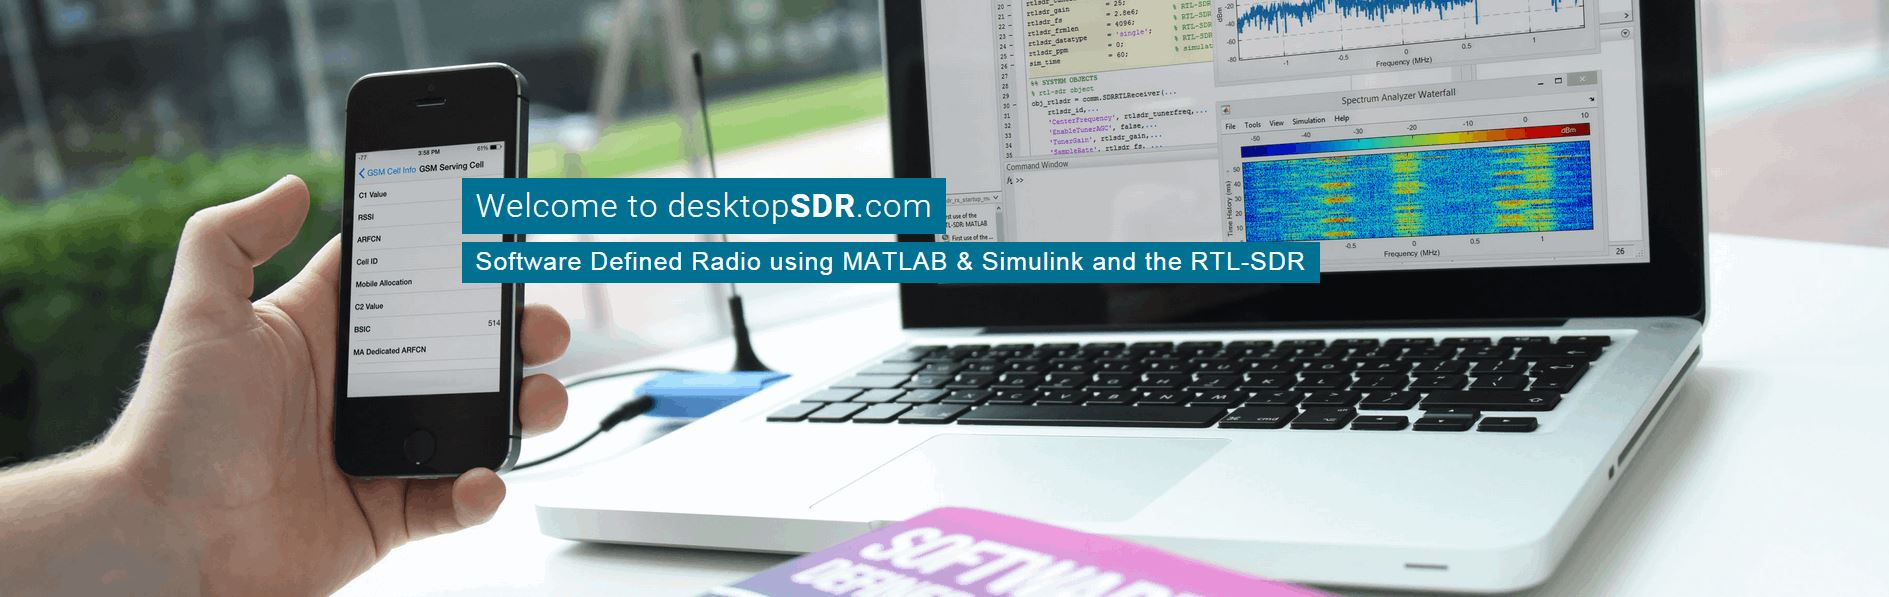 FPGAs for DSP and Software-Defined Radio: Short Course at UCLA